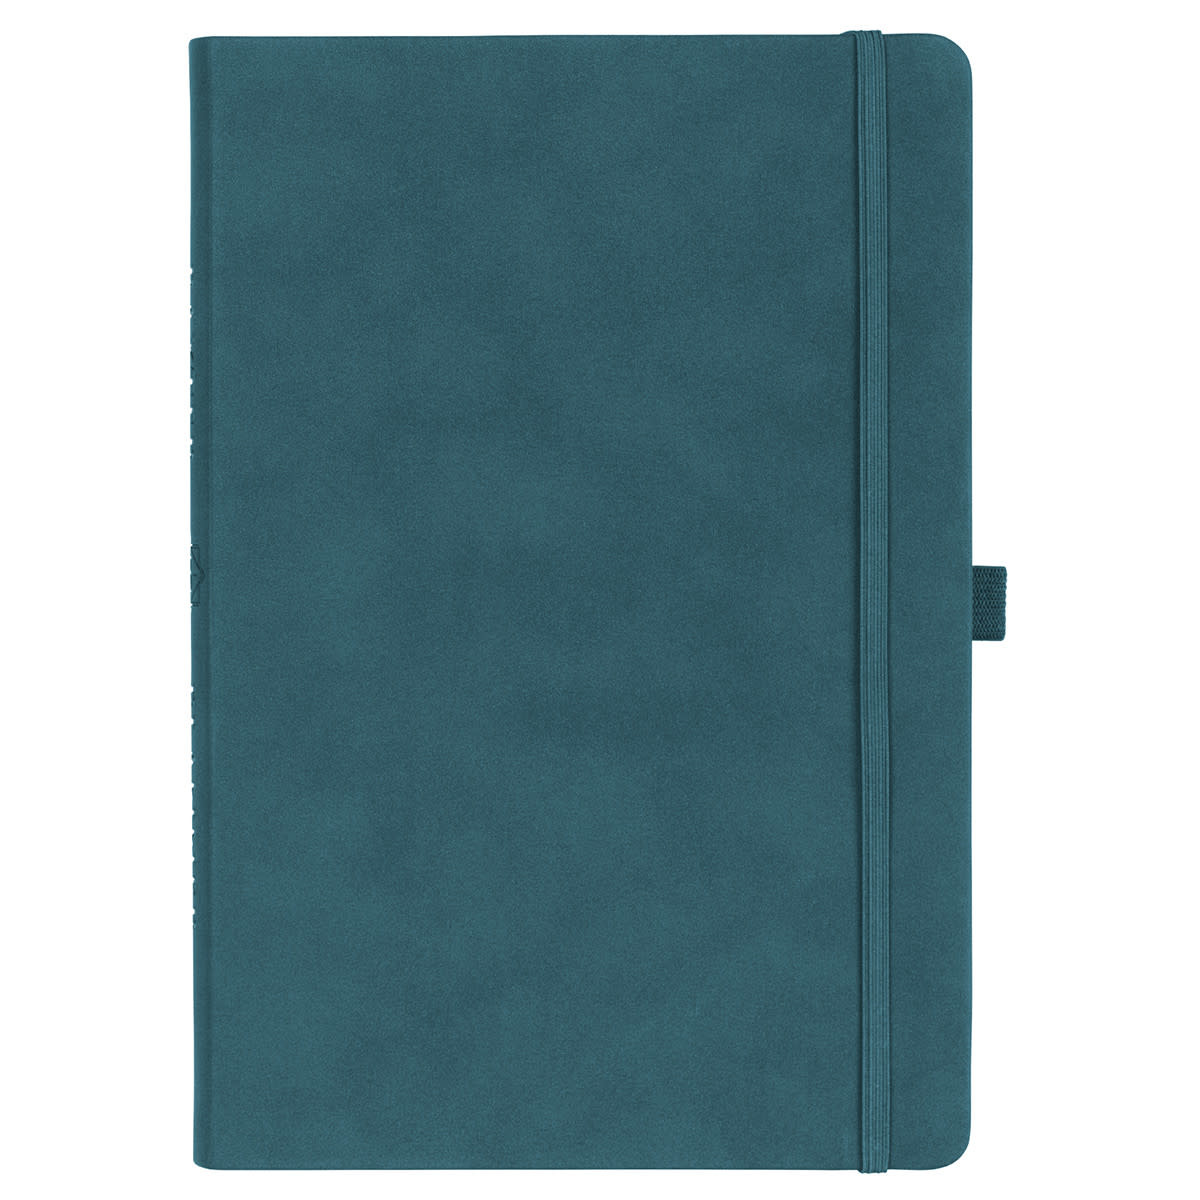 Christian Art Gifts Teal Faux Leather Planner